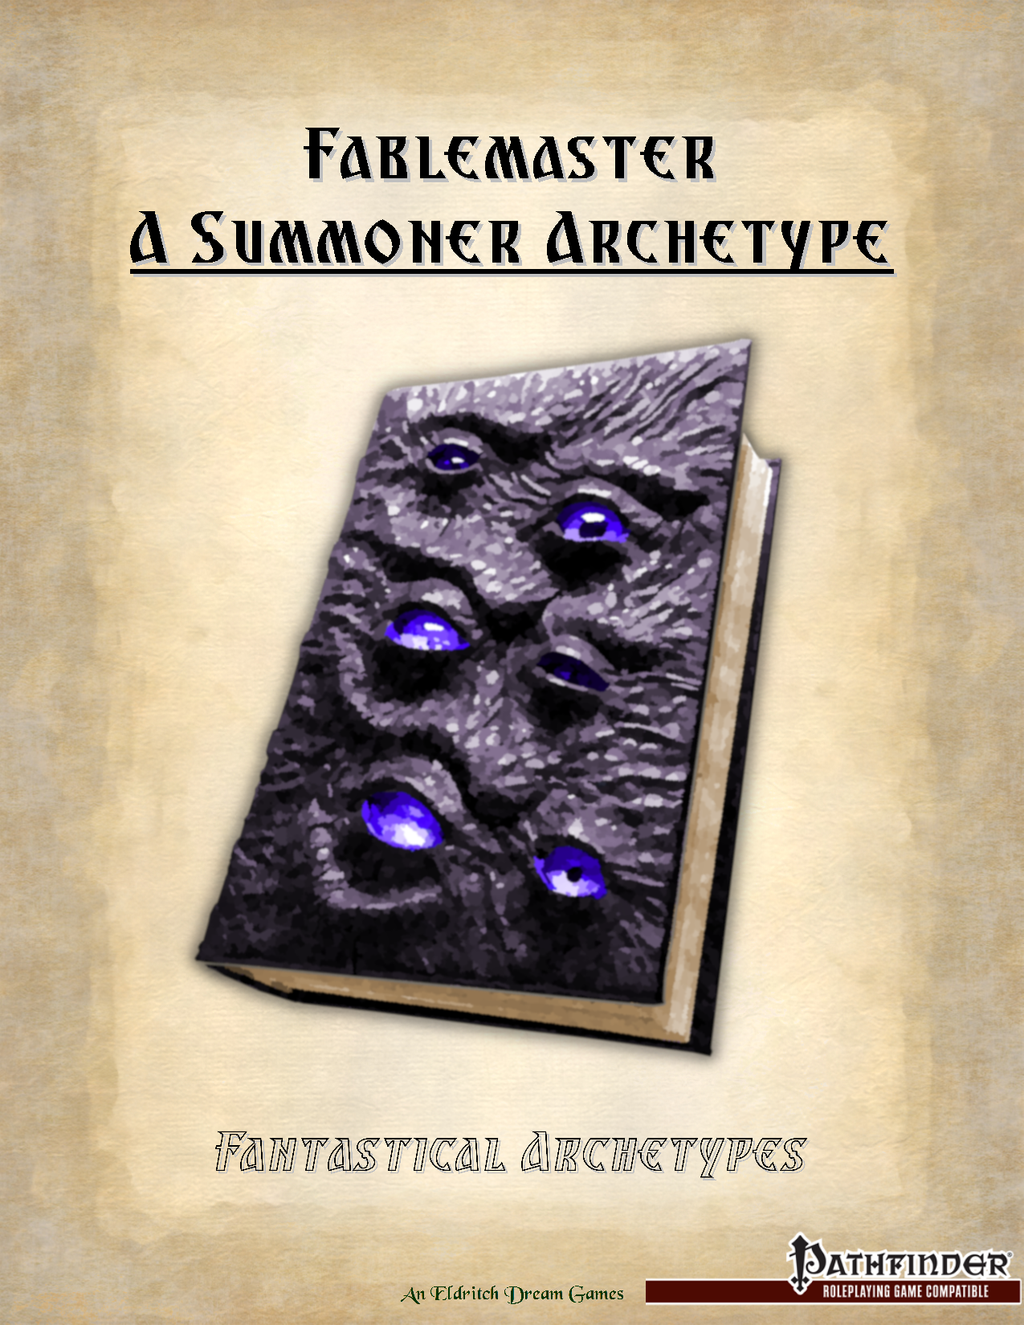 Fantastical Archetypes, Fablemaster An Unchained Summoner Archetype